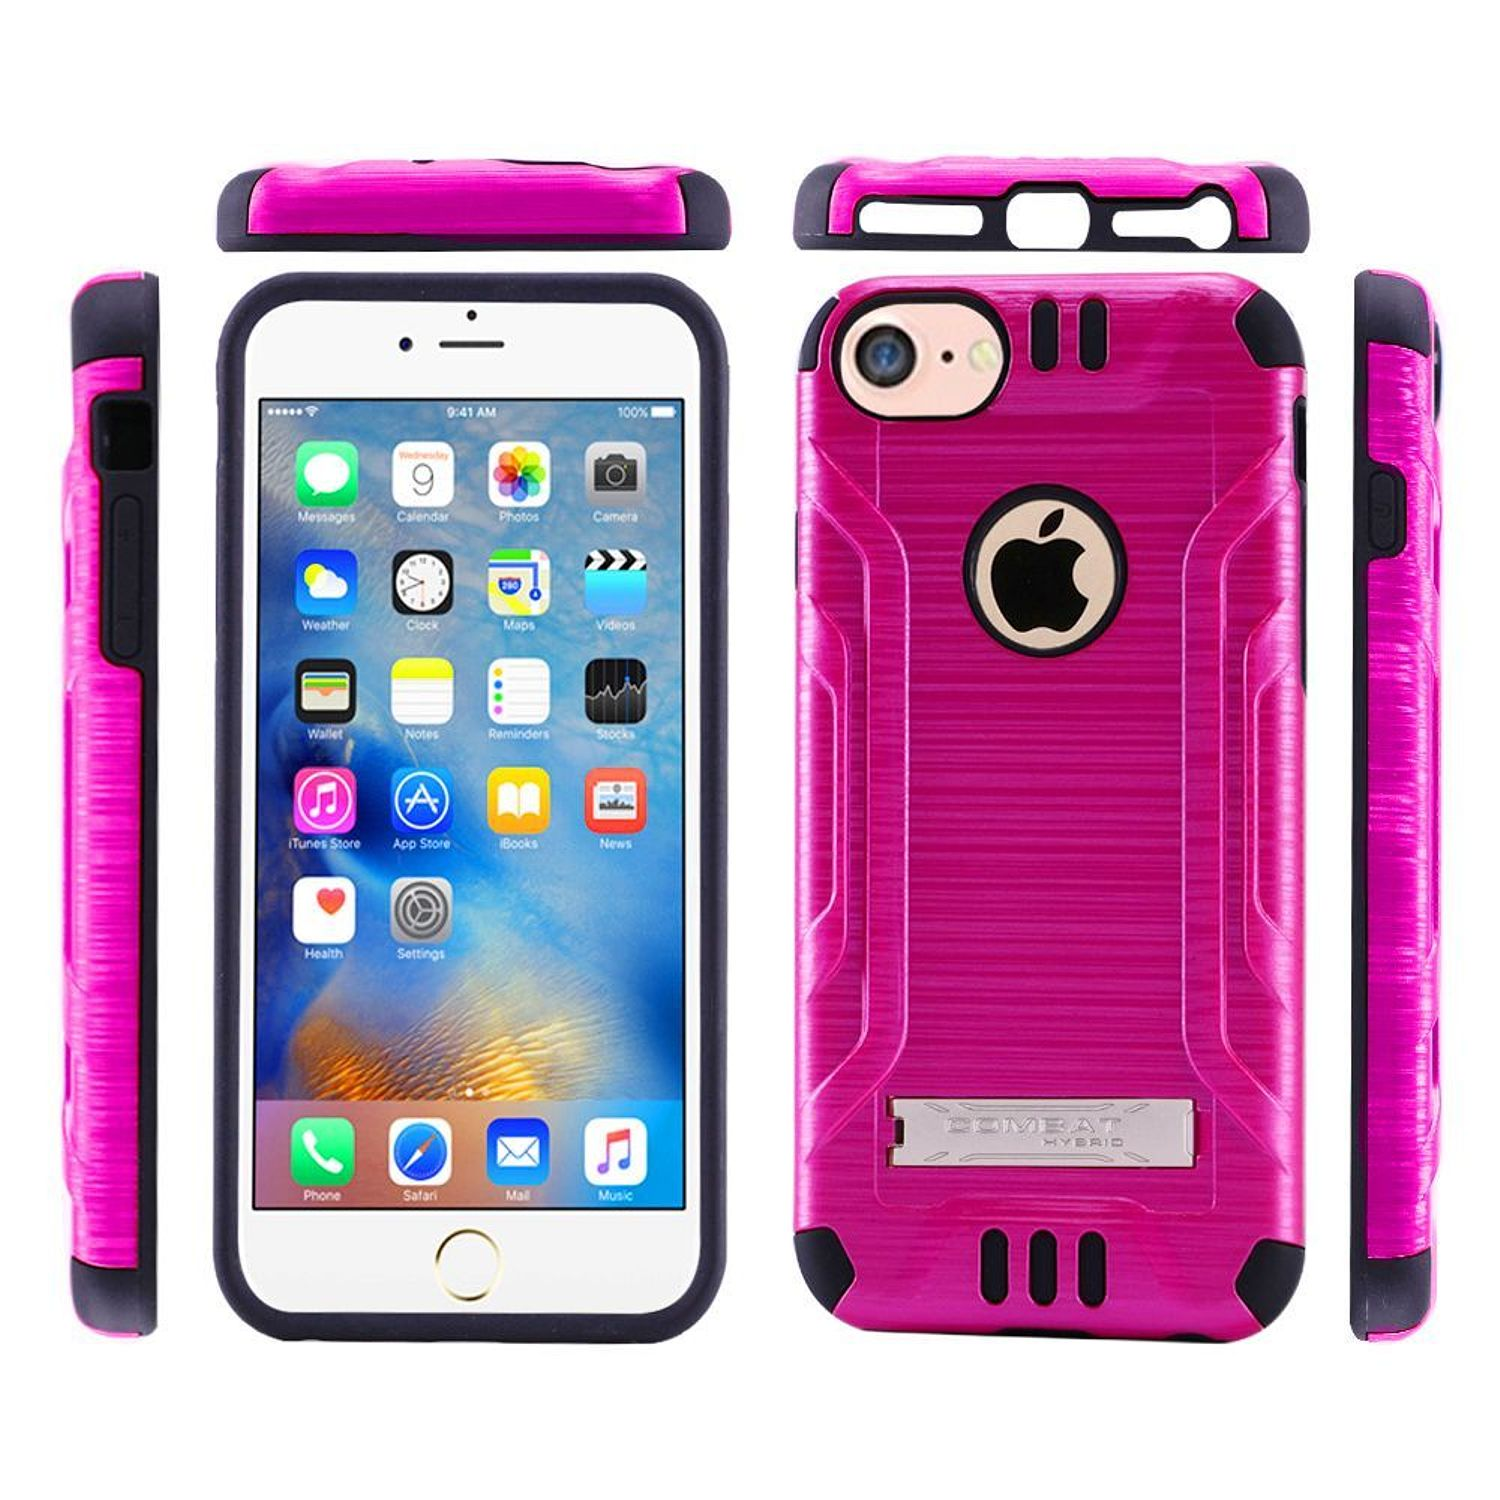 iPhone 7 Case, by Insten Dual Layer [Shock Absorbing] Hybrid Stand Hard Plastic/Soft TPU Rubber Case Cover for Apple iPhone 7, Hot Pink/Black